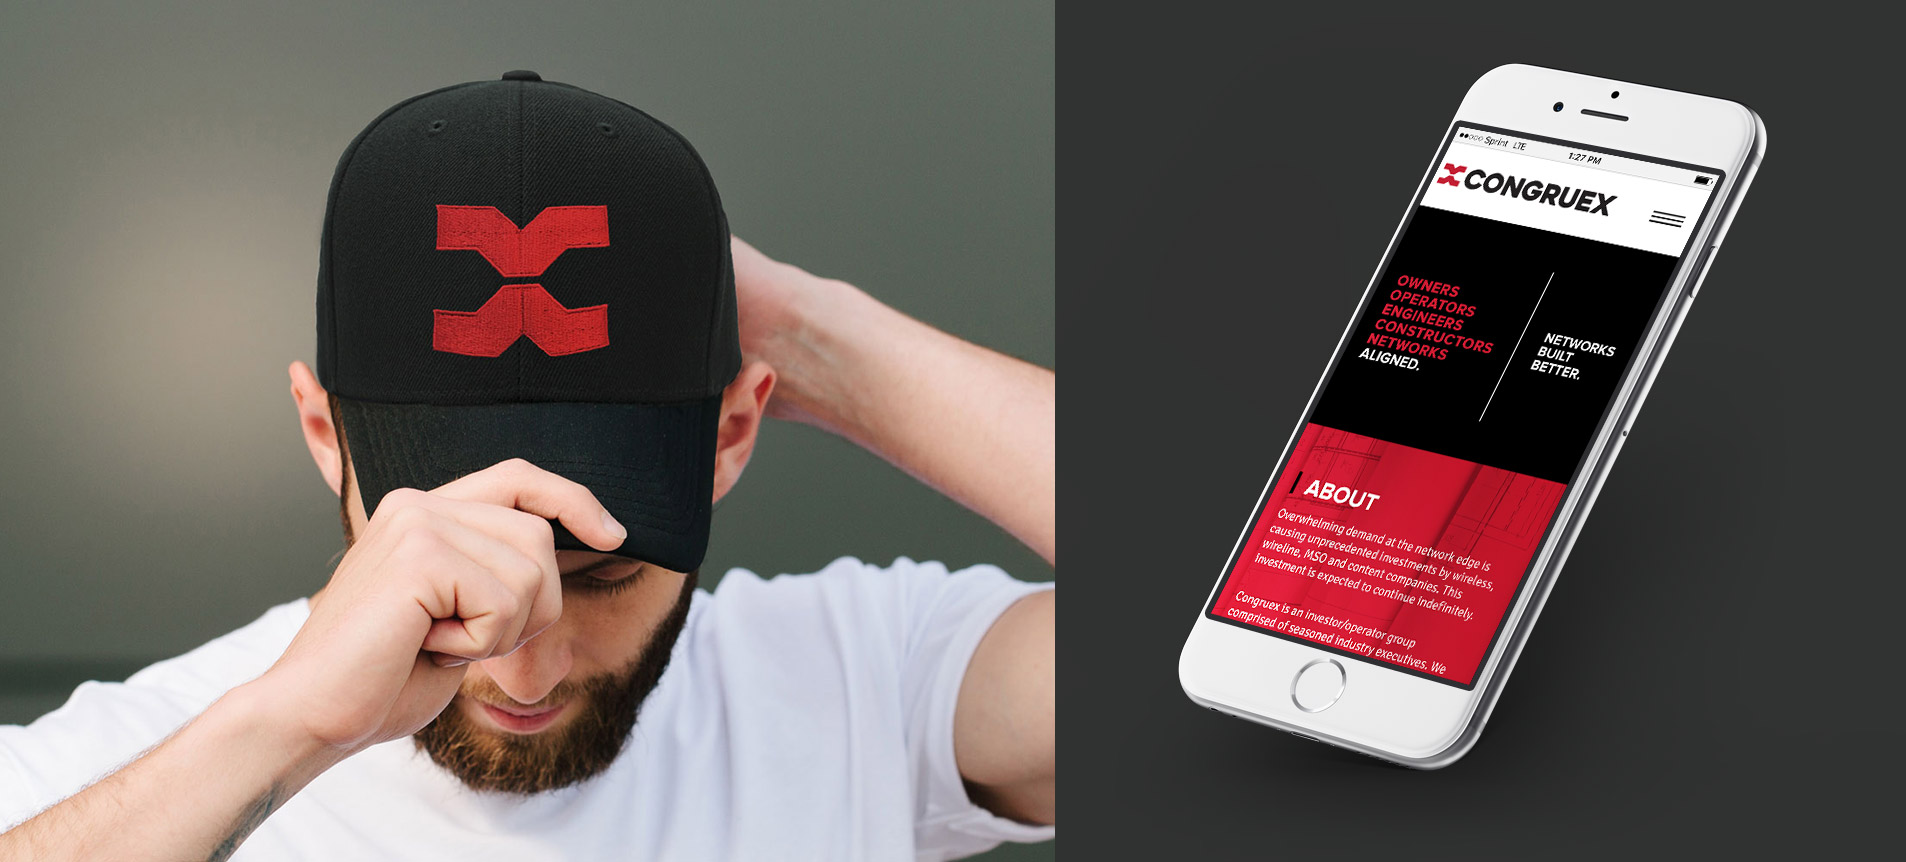 logo on hat and mobile website